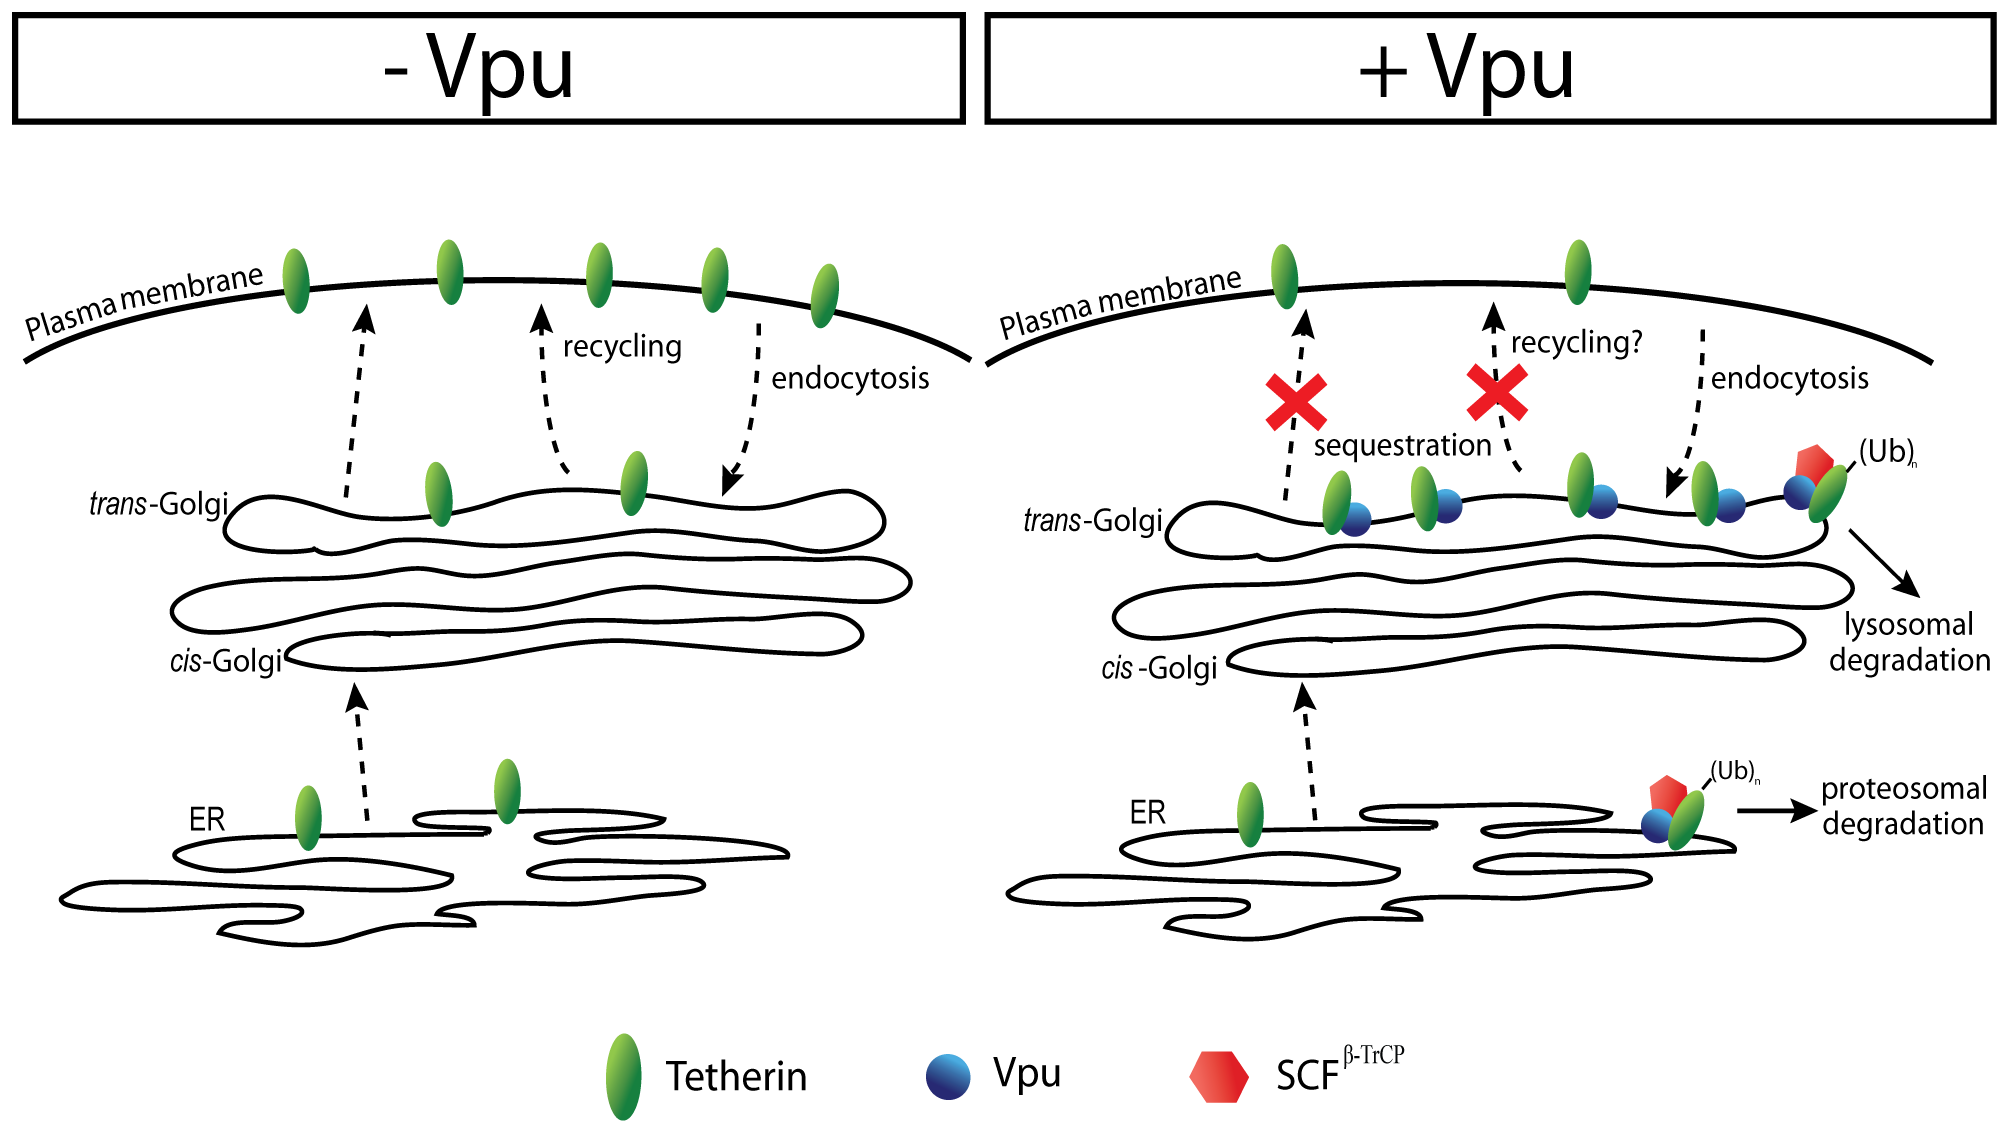 Model of Vpu-mediated down-regulation of Tetherin from the cell-surface.